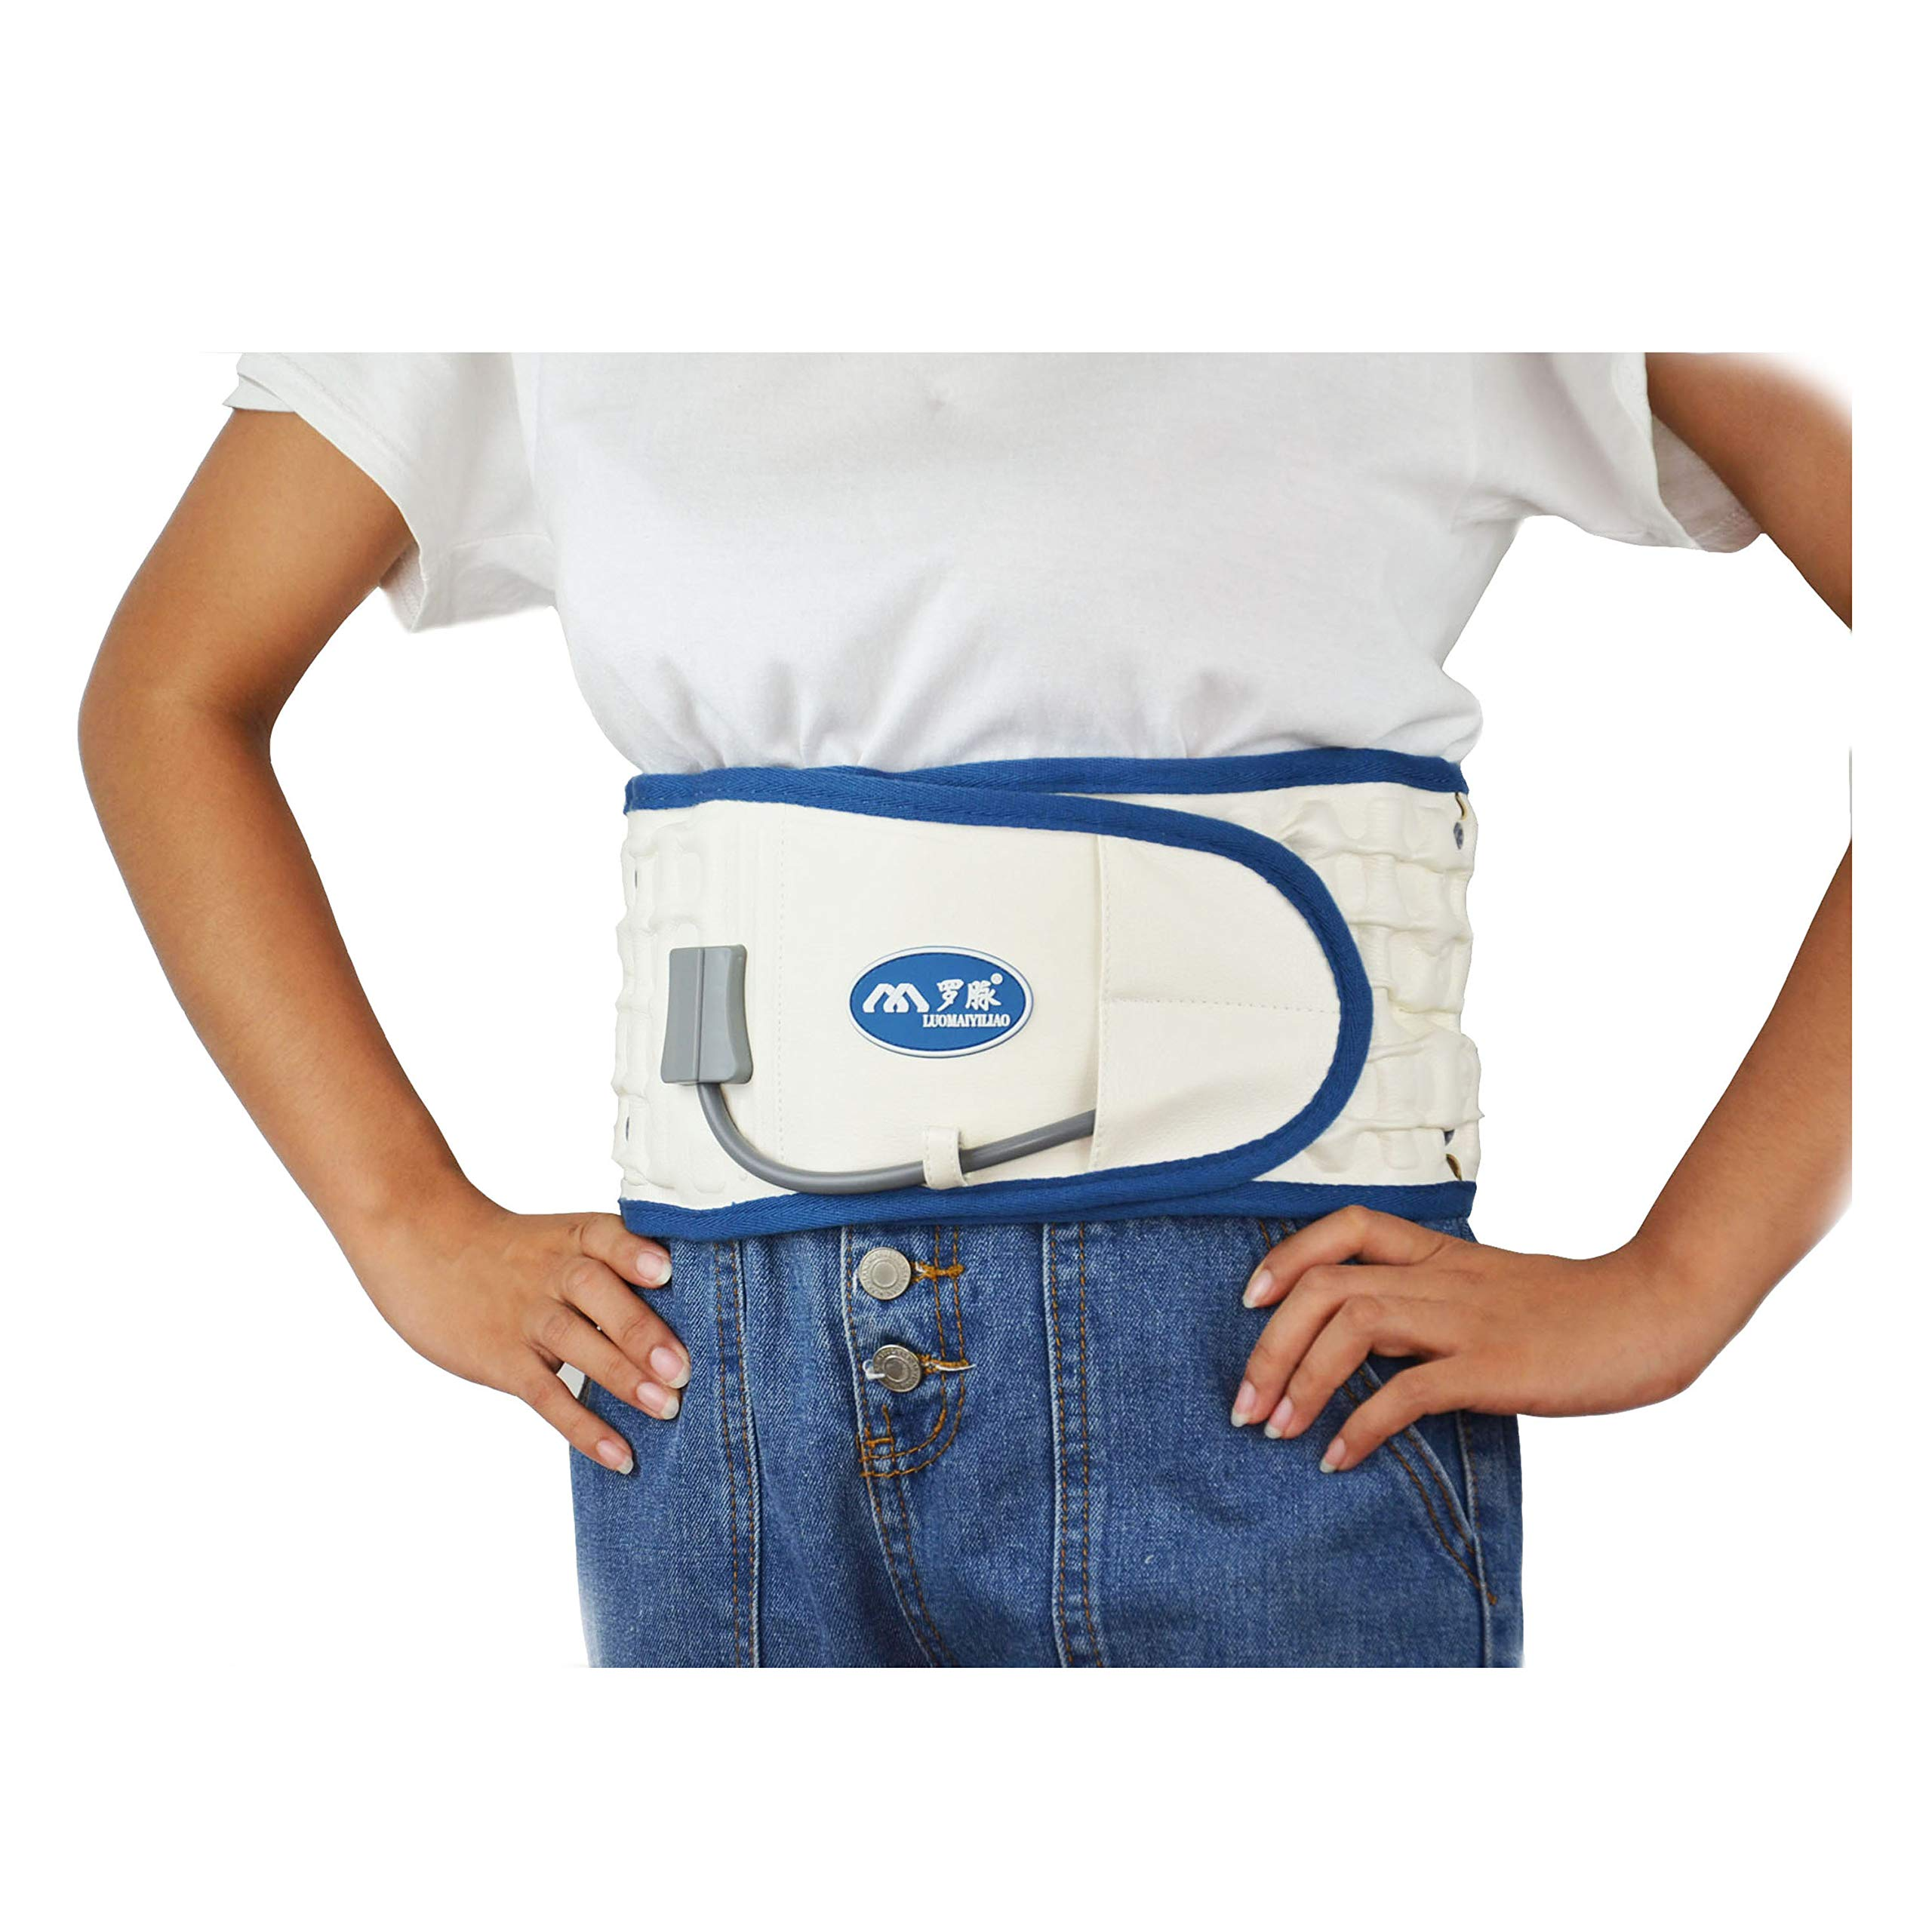 Decompression Back Belt Back Brace Back Pain Lower Lumbar Support Back Massage Inflatable Traction Device - One Size for less than 51 inches Waists. (White) by ZSZBACE